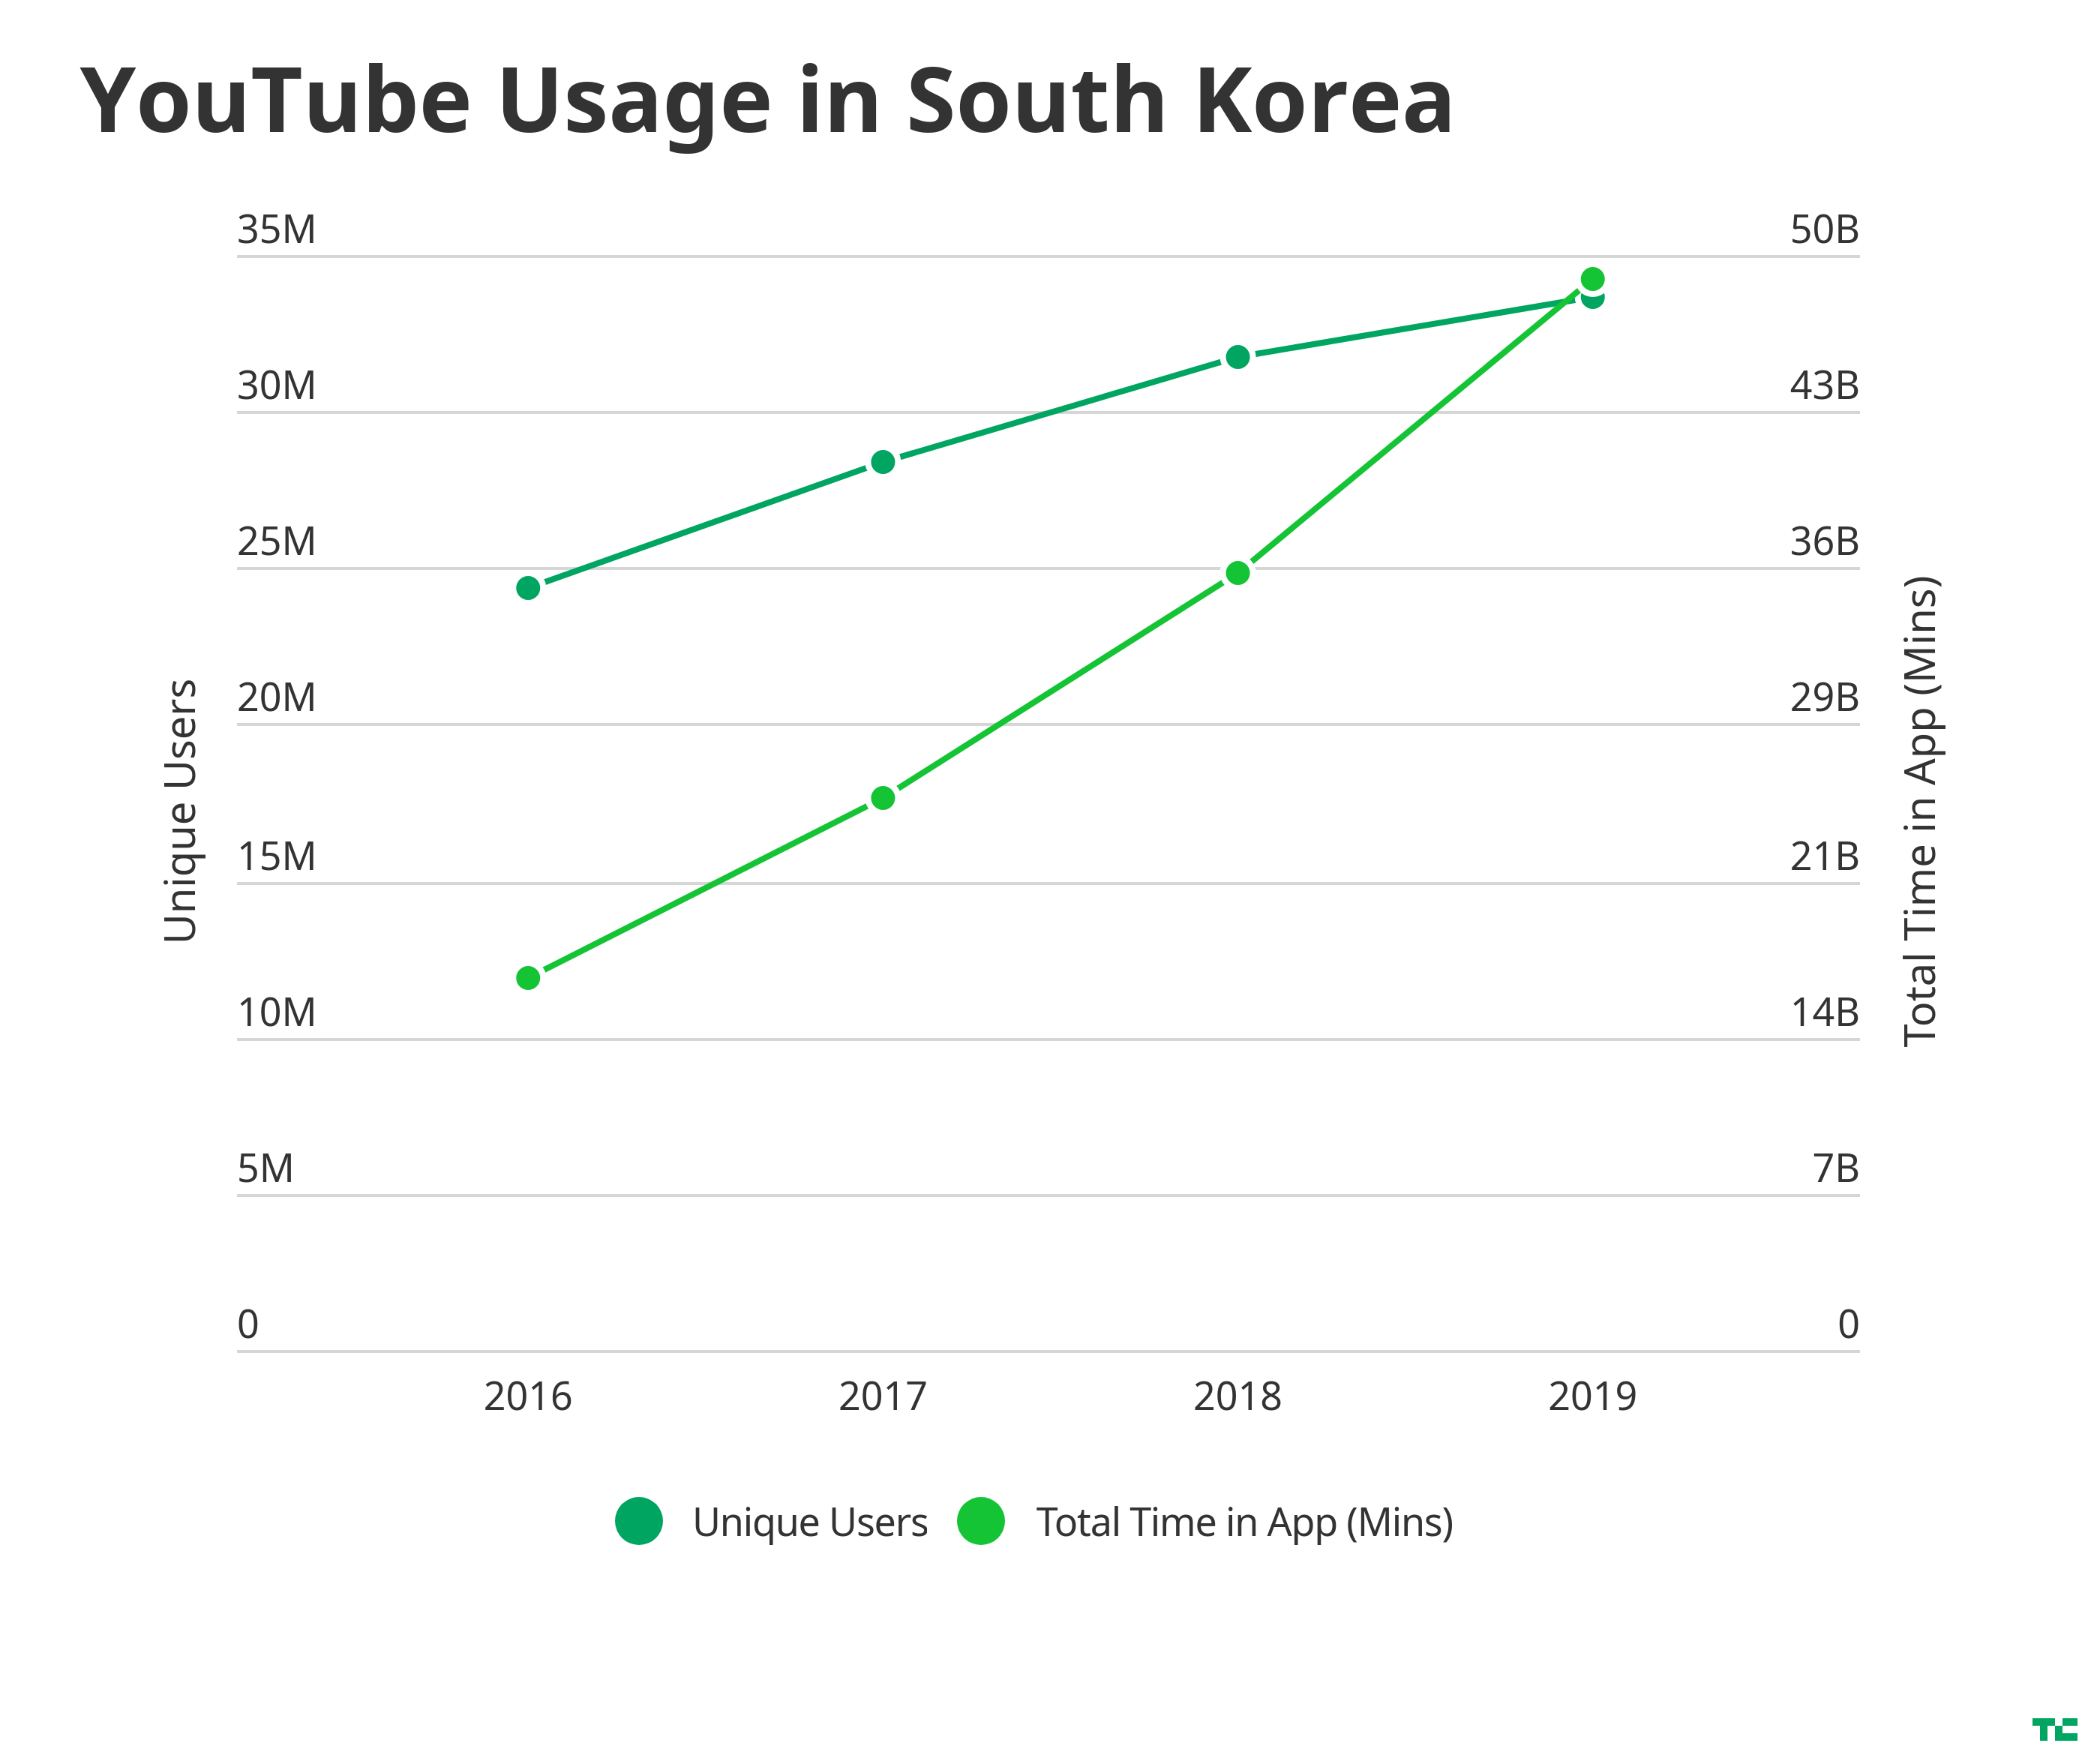 YouTube has seen soaring growth in South Korea